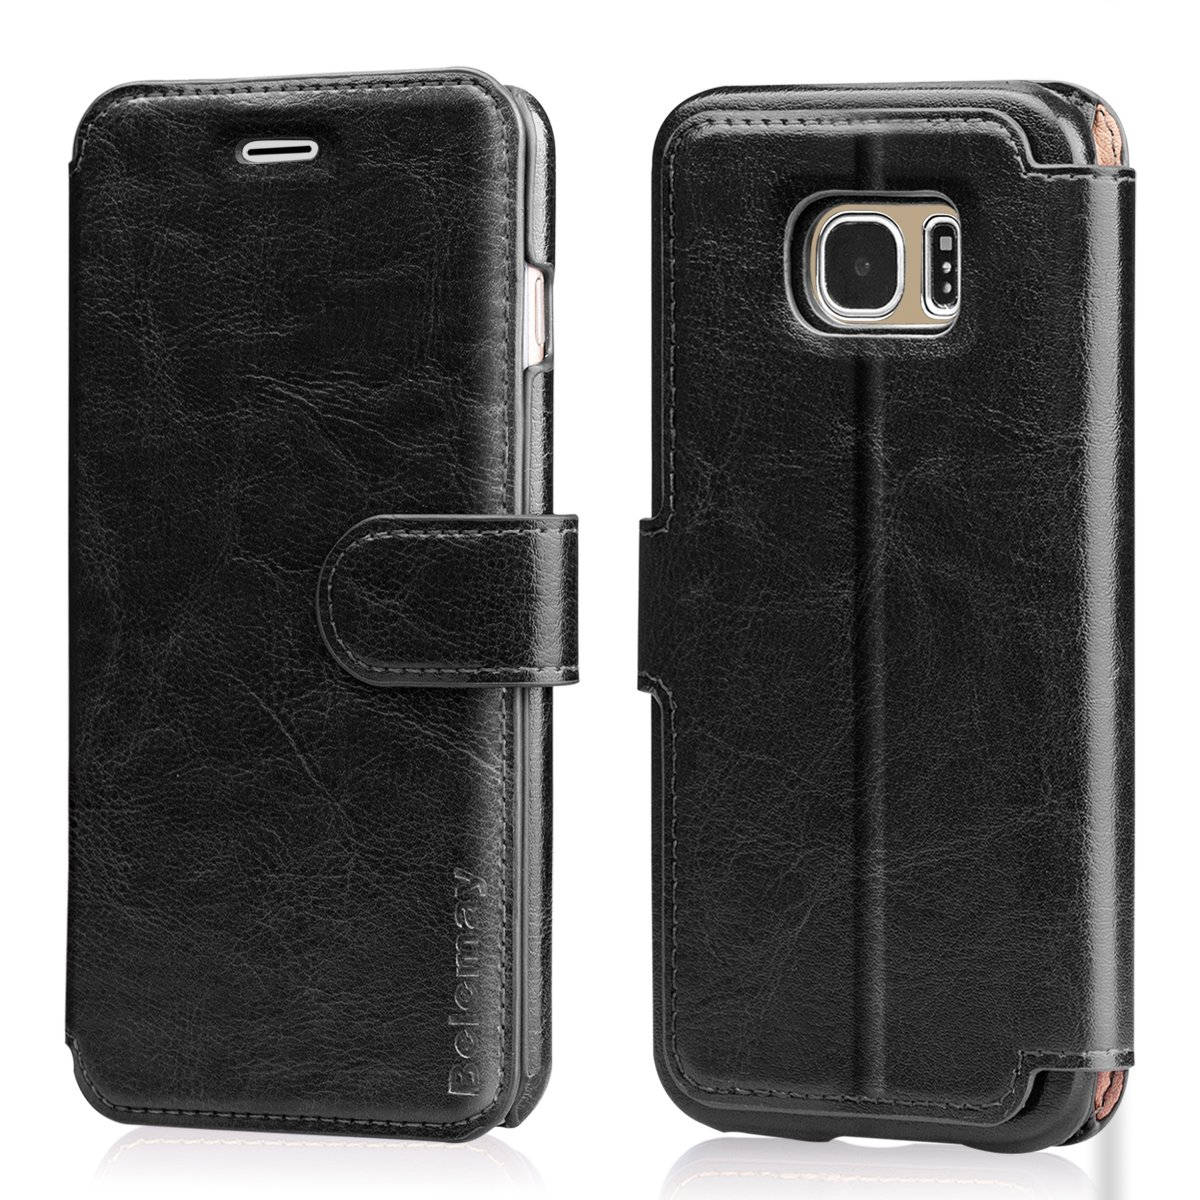 Belemay Samsung Galaxy S9 Case, Genuine Cowhide Leather Wallet Case, Premium Folio Flip Book Cover with Magnetic Closure, Kickstand, Card Holder Slots, Cash Pockets Compatible Samsung Galaxy S9, Black BMUS0107